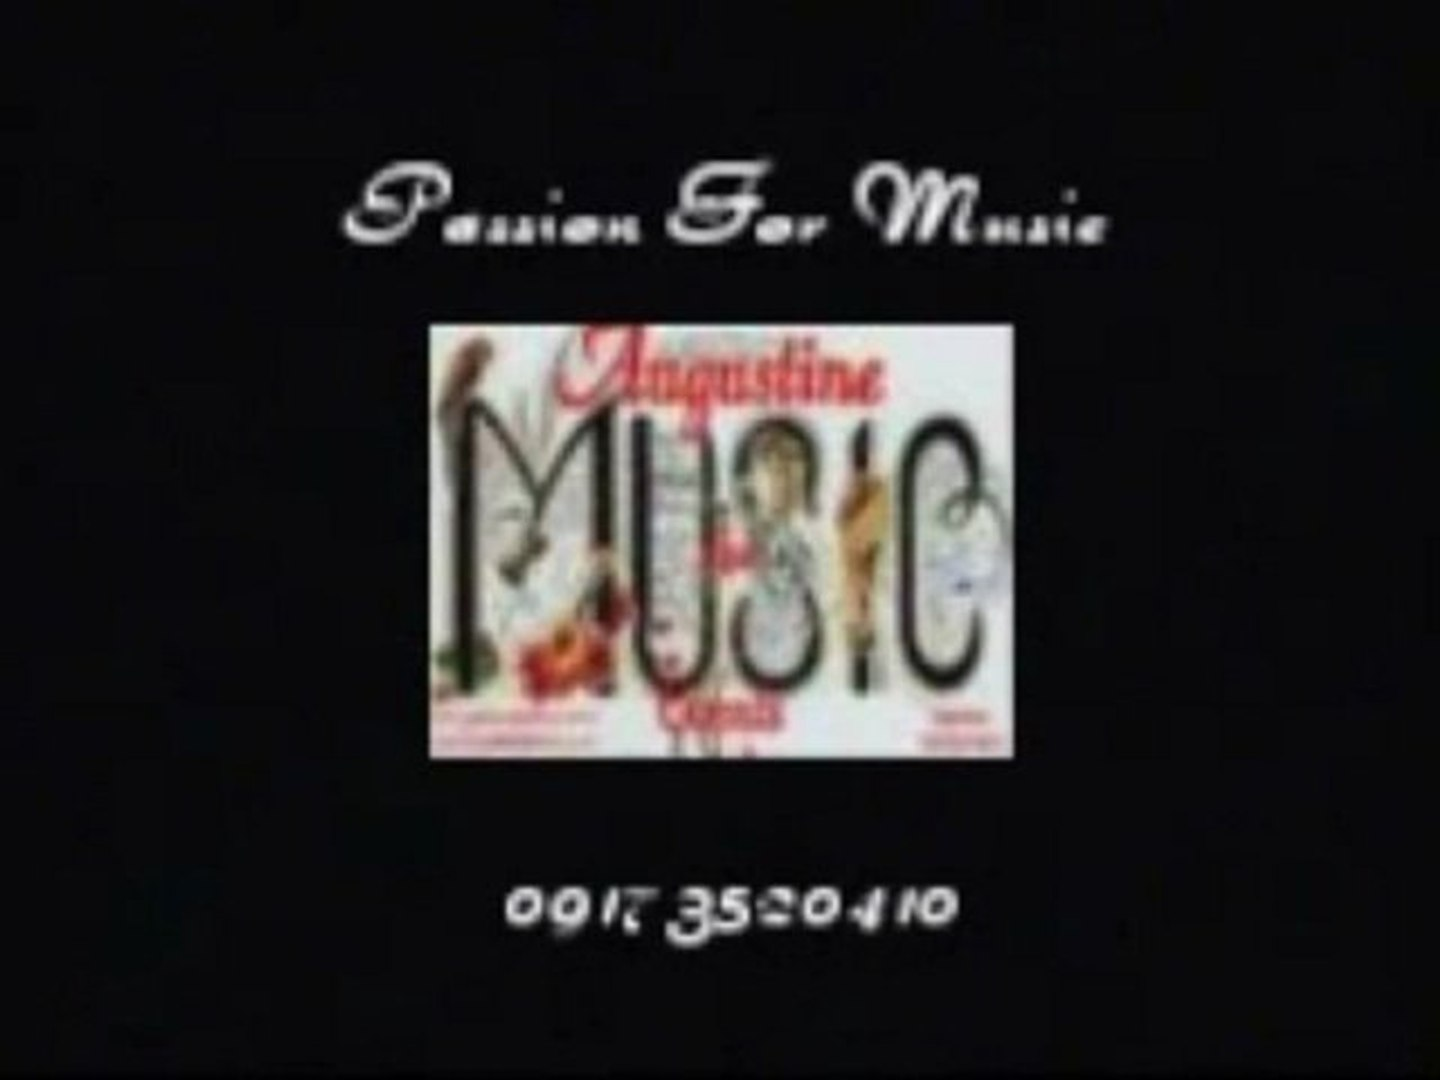 MUSICIANS IN THE PHILIPPINES - AUGUSTINE MUSIC AND EVENTS